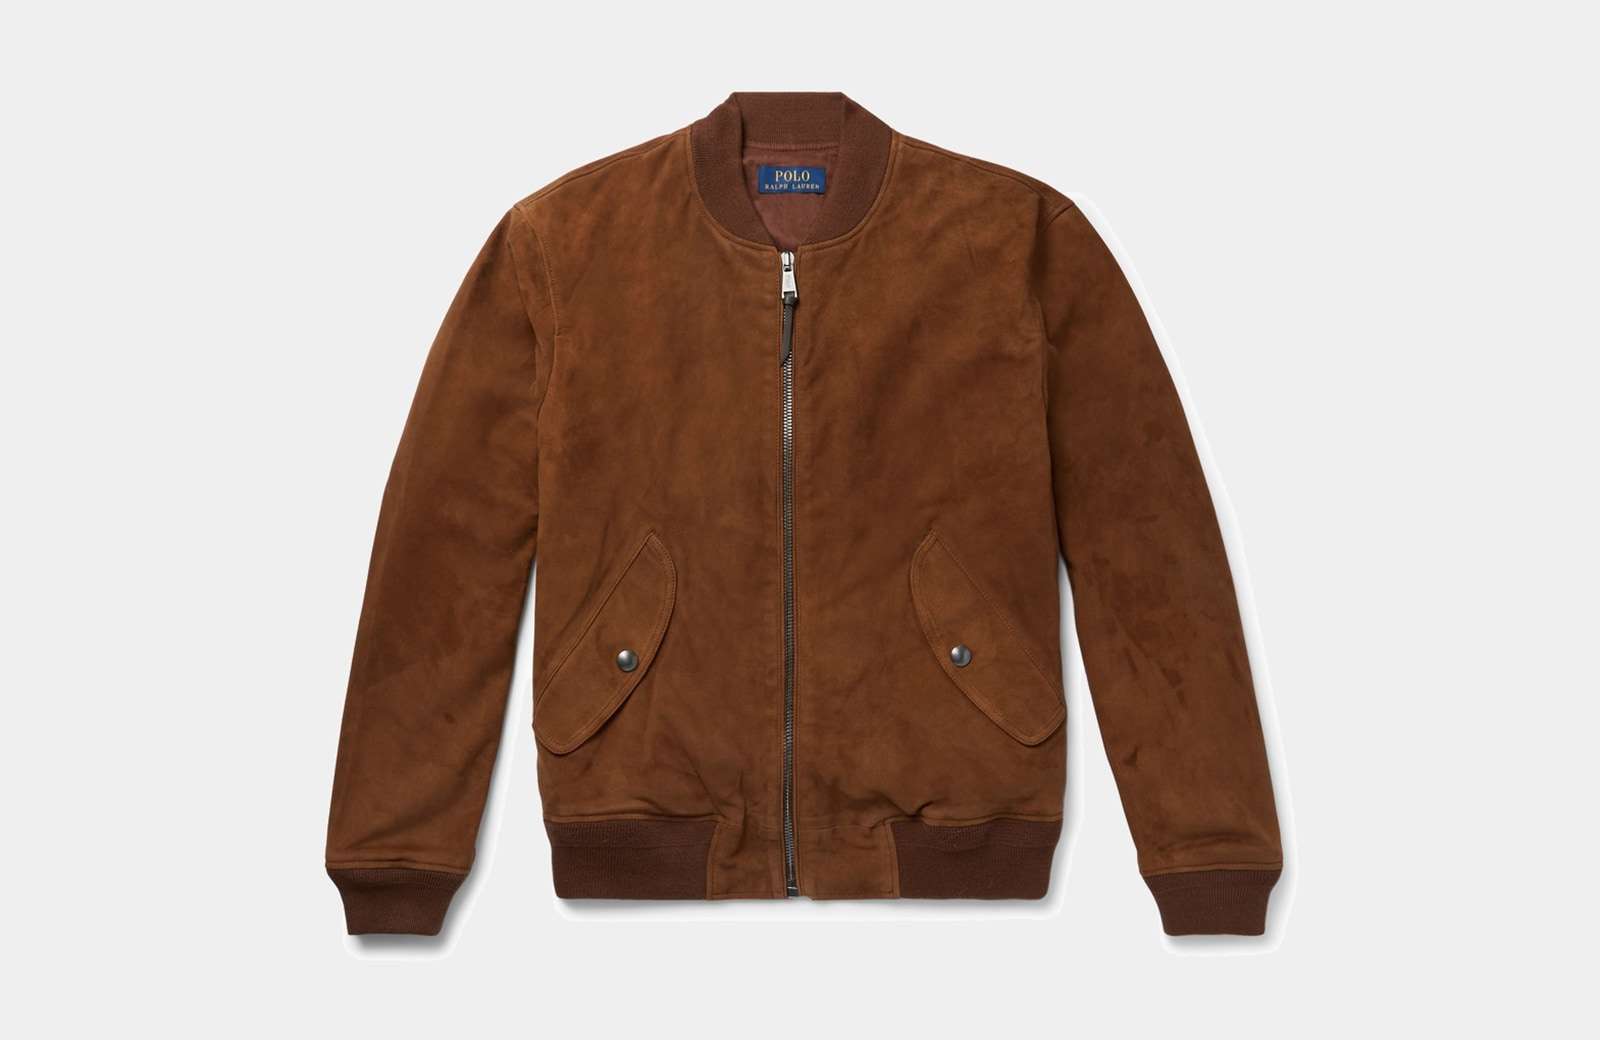 best brown bomber jacket men Polo Ralph Lauren luxury style - Luxe Digital